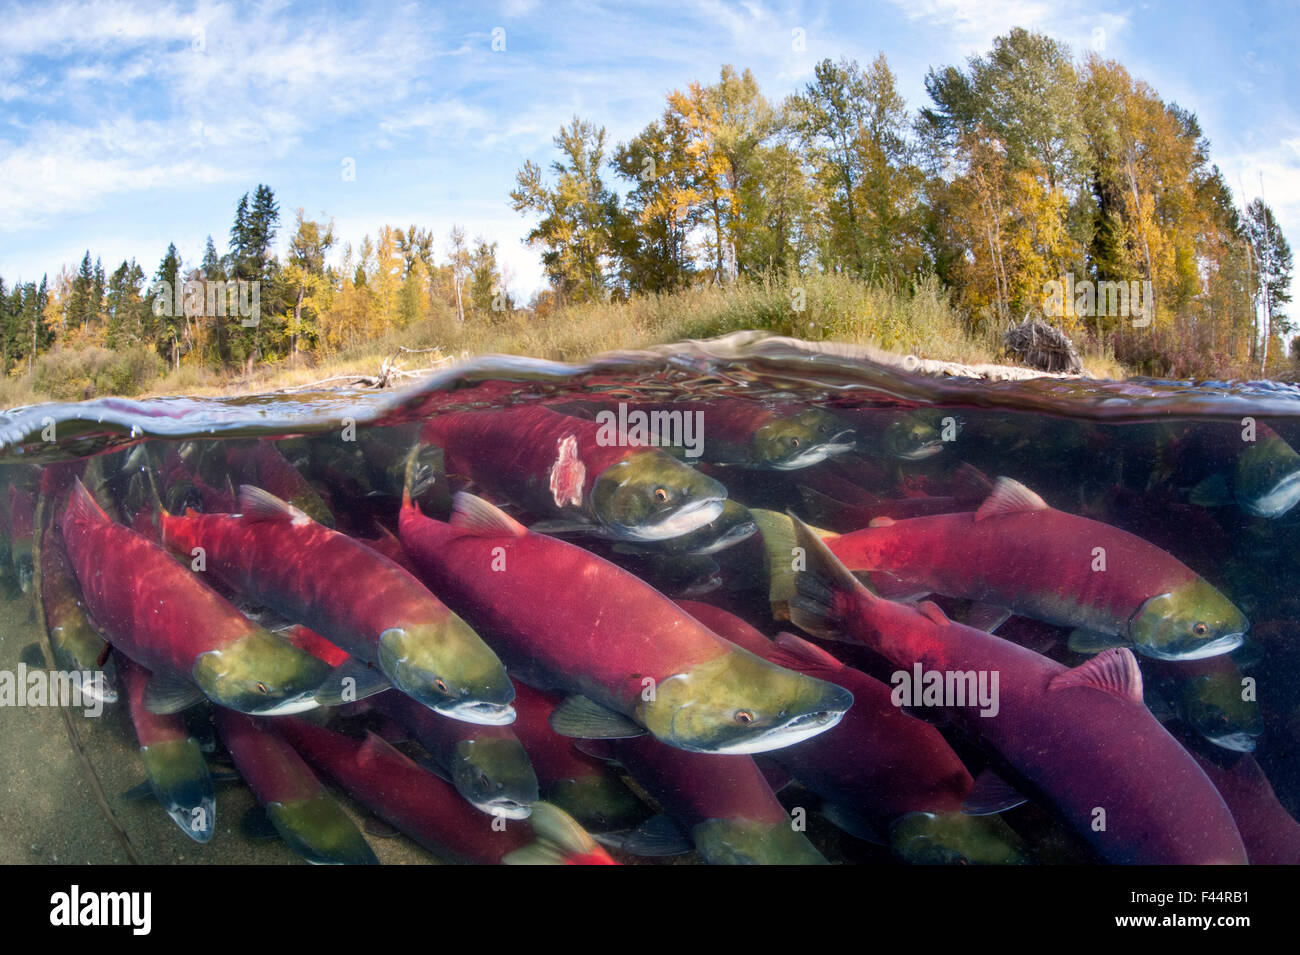 A split level photo of group of Sockeye salmon (Oncorhynchus nerka) fighting their way upstream as they migrate - Stock Image